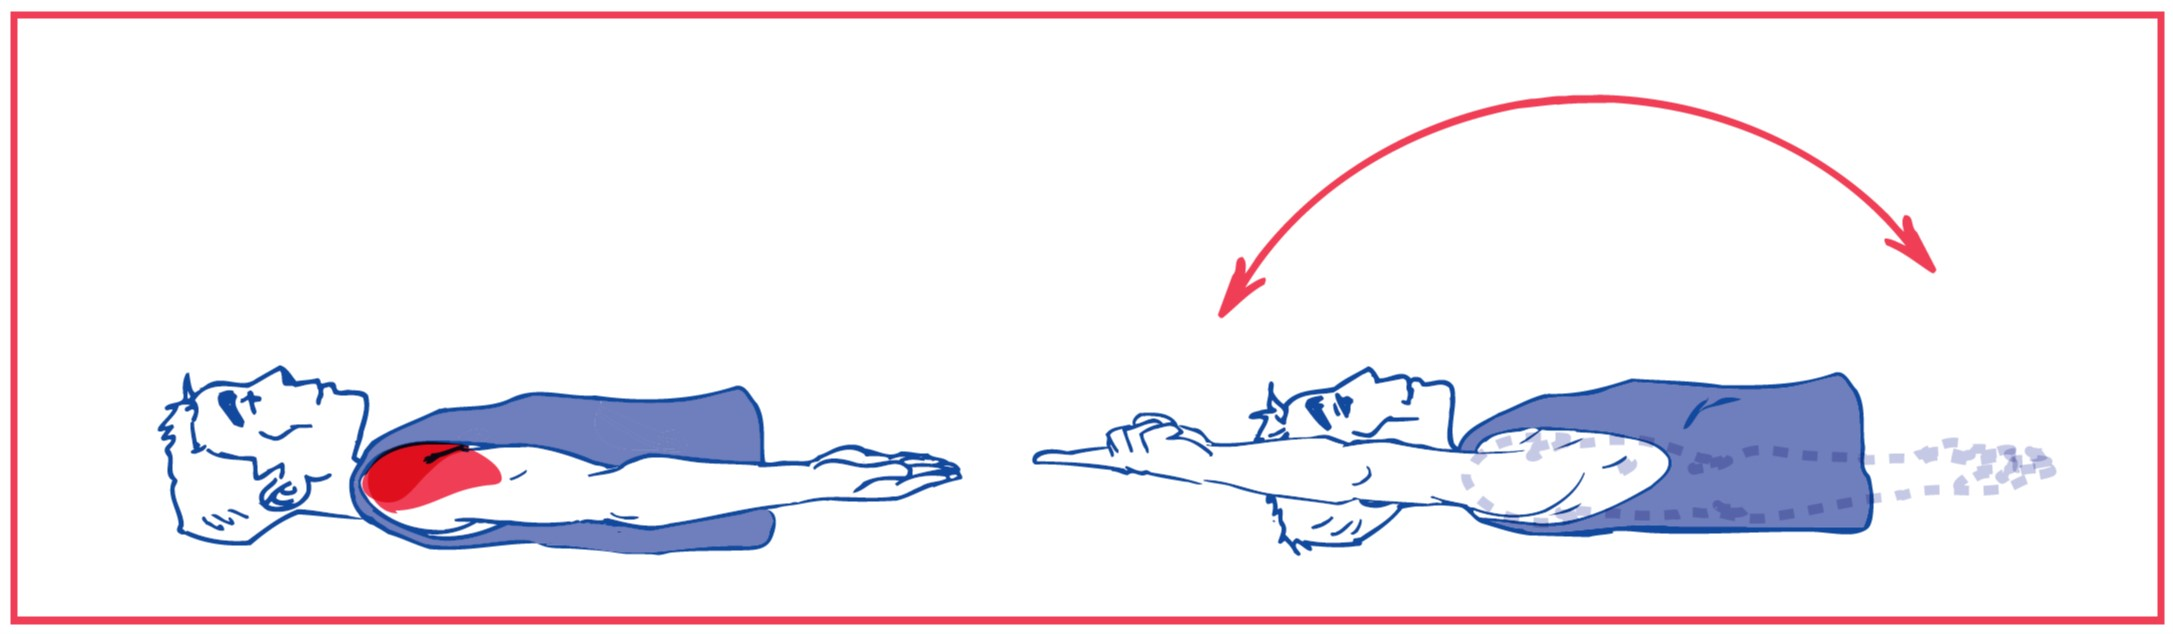 1. Free elevation of the arm